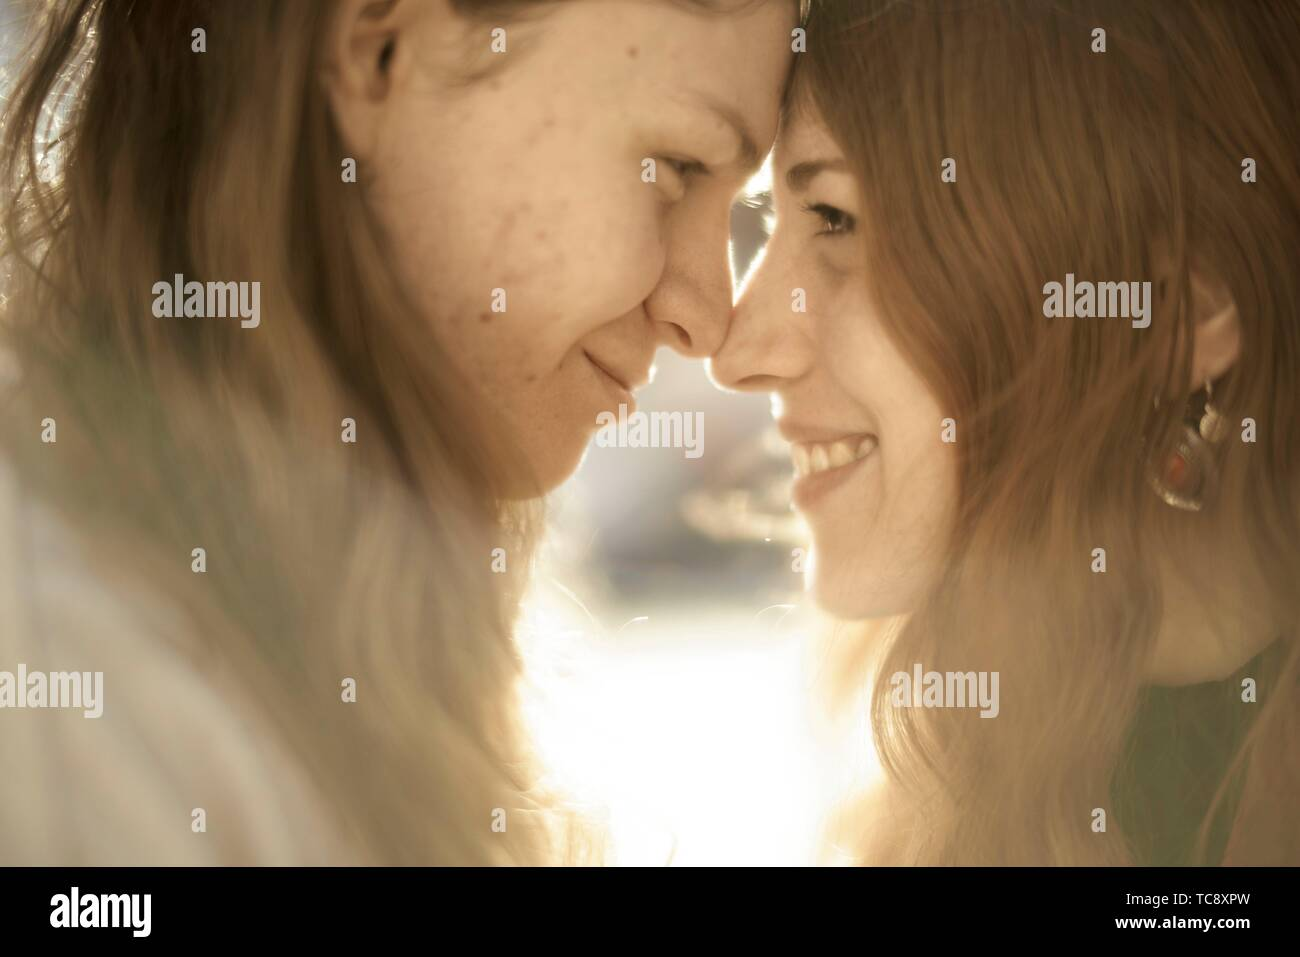 affectionate couple outdoors in sunlight, looking at each other, face to face, in Berlin, Germany - Stock Image